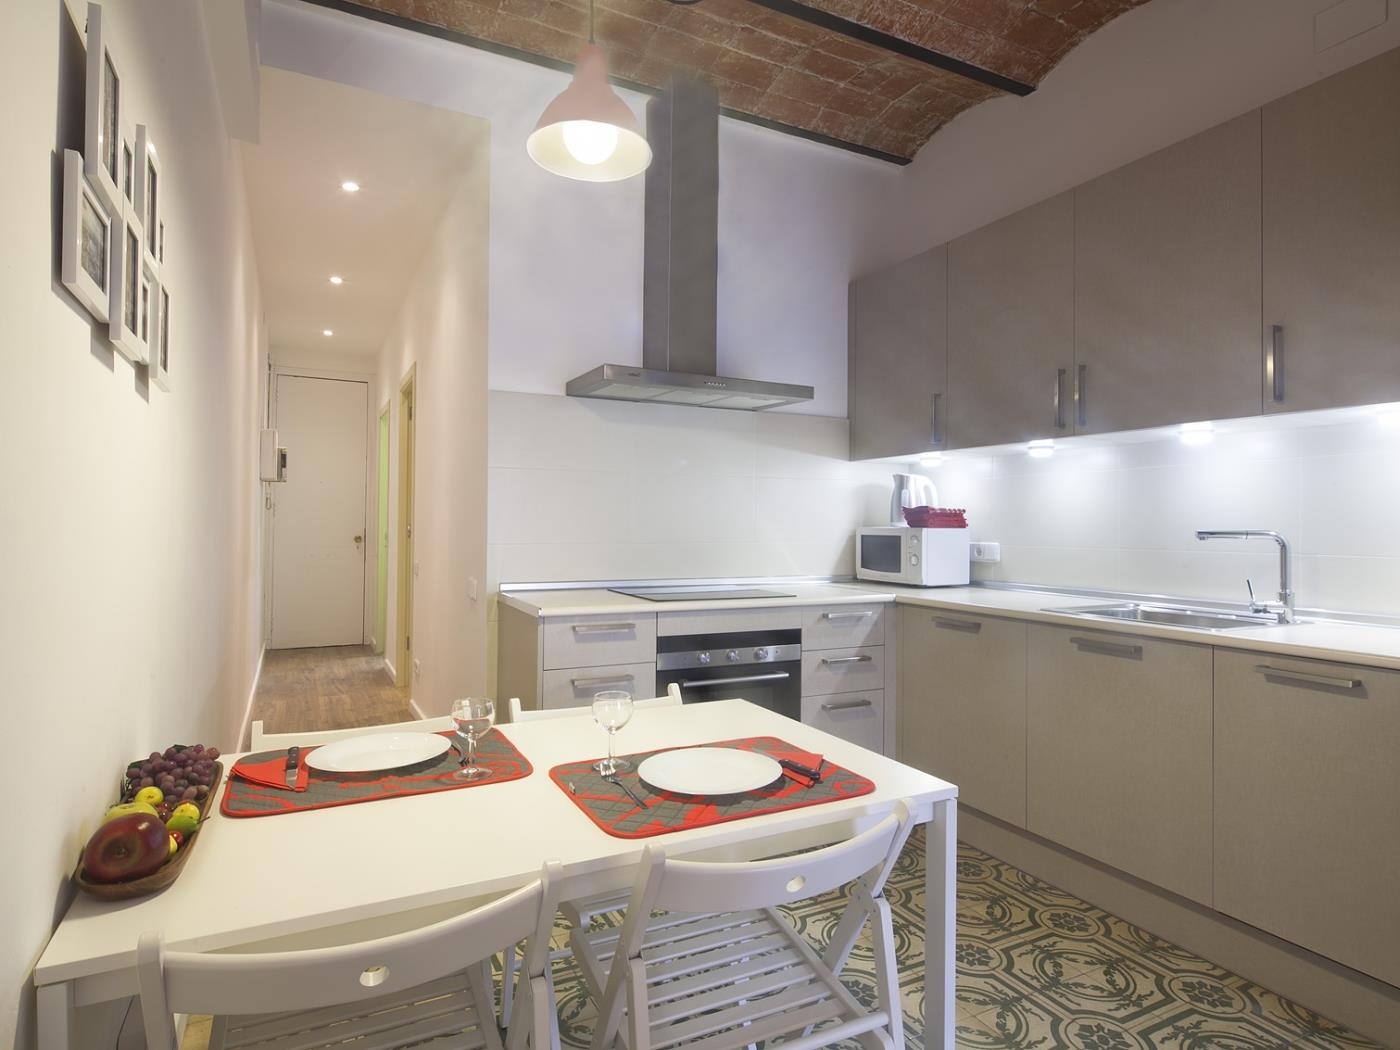 The best located near Sagrada Familia ideal for groups for 6 - My Space Barcelona Apartments